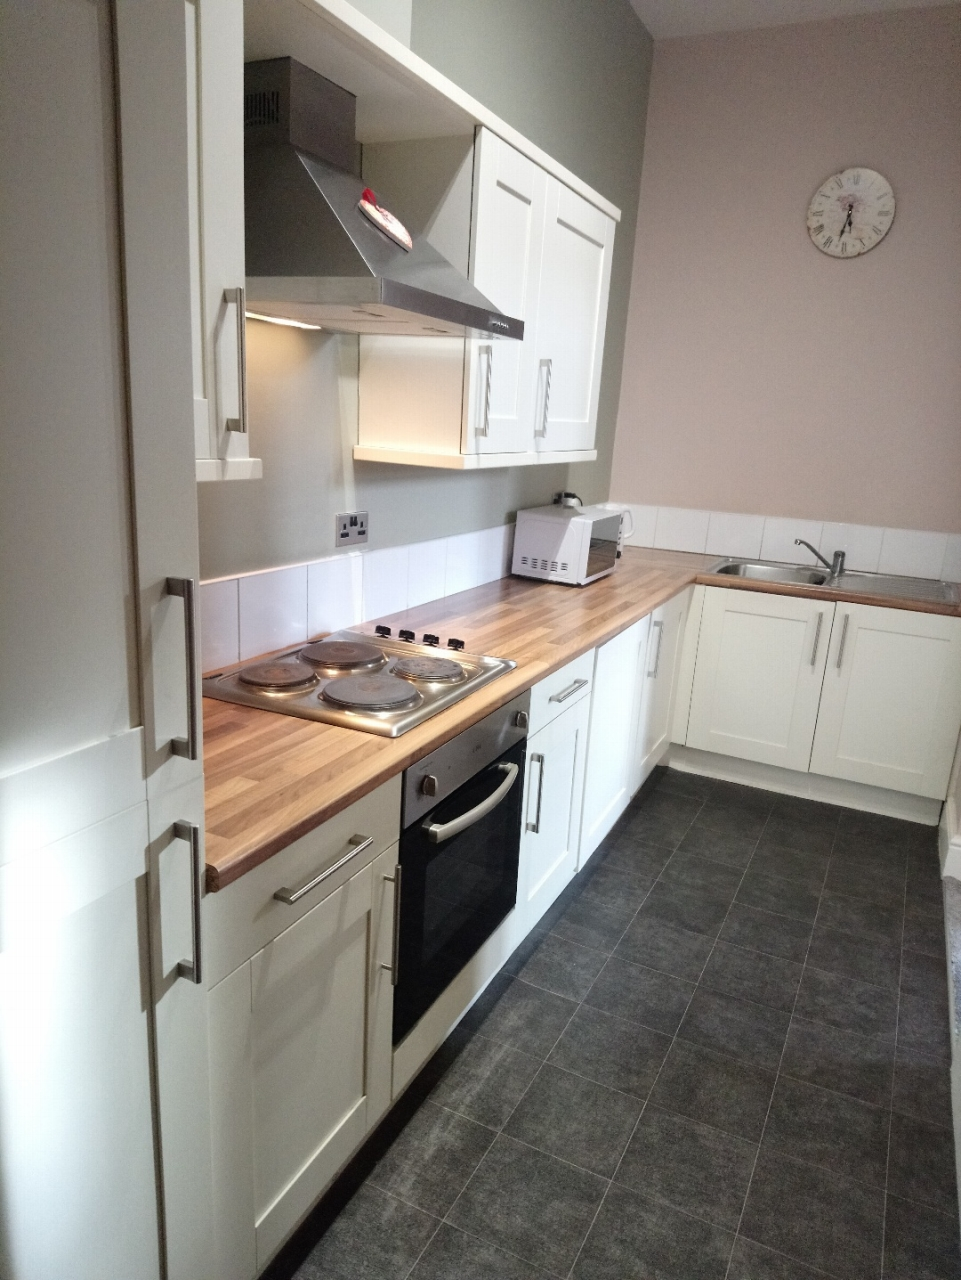 2 bedroom apartment flat/apartment SSTC in Leicester - Photograph 11.